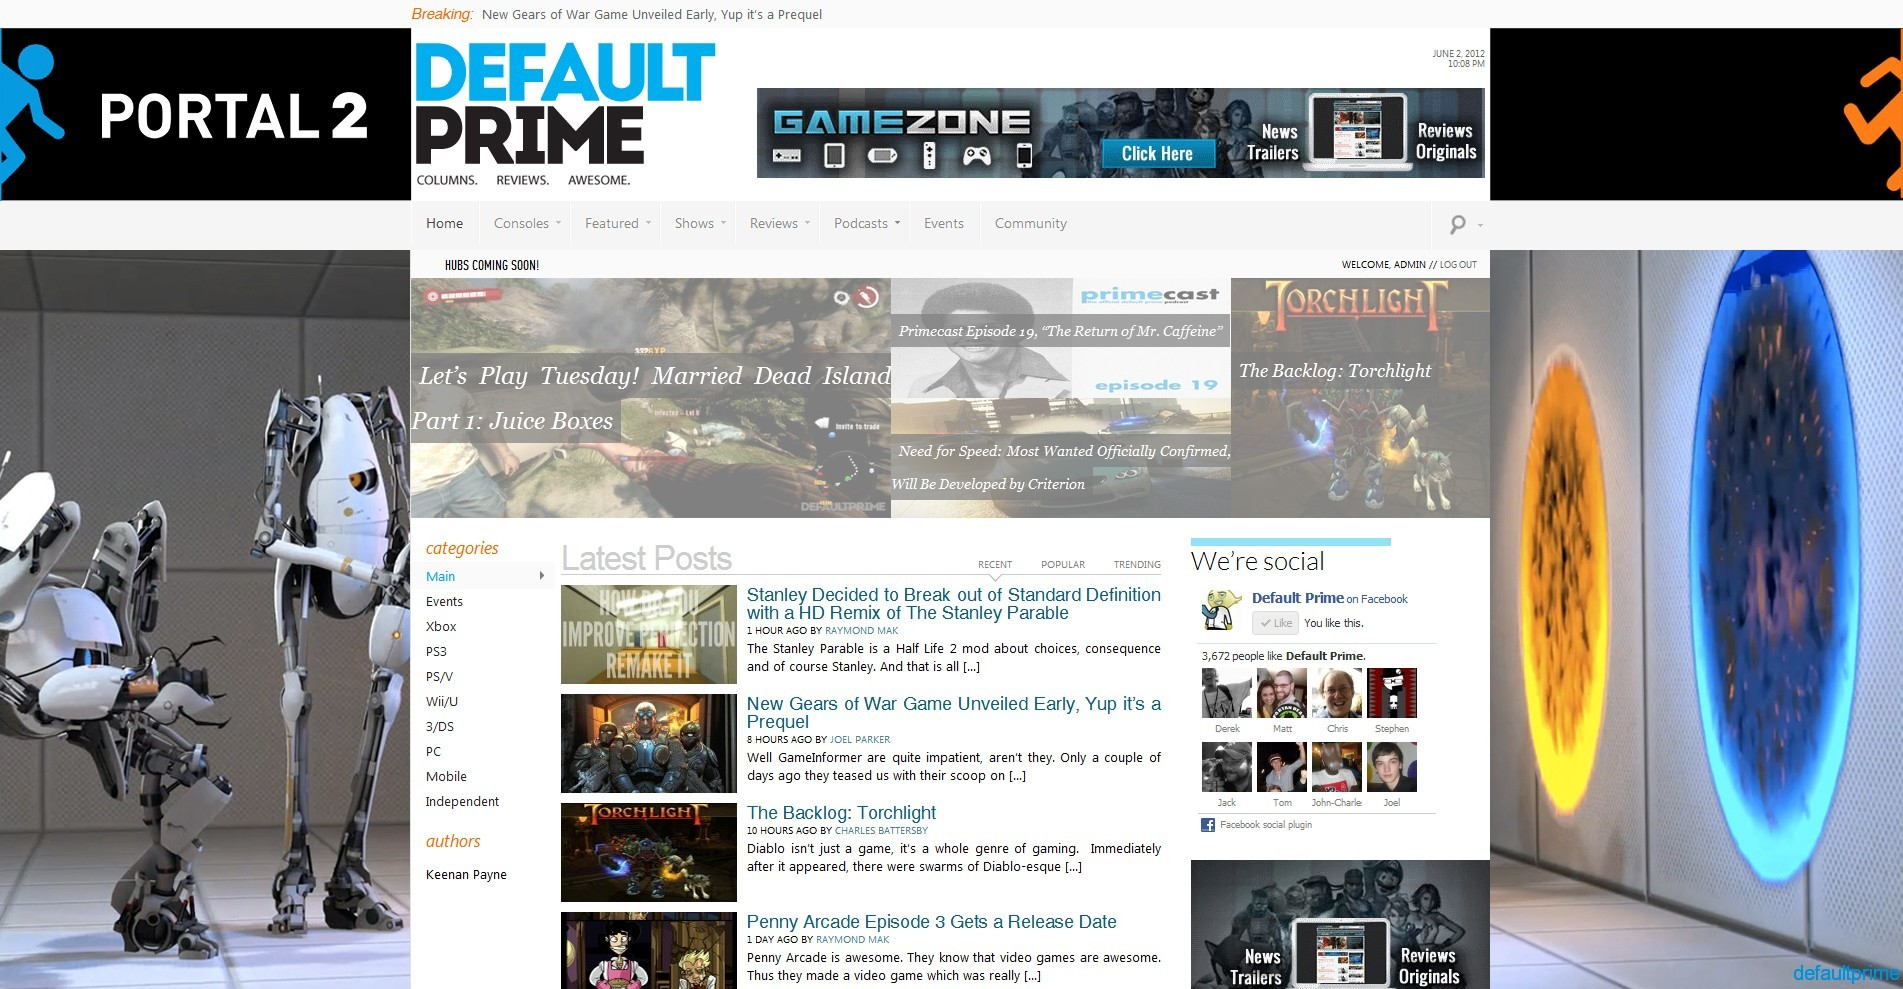 default prime fullpage ad Advertising